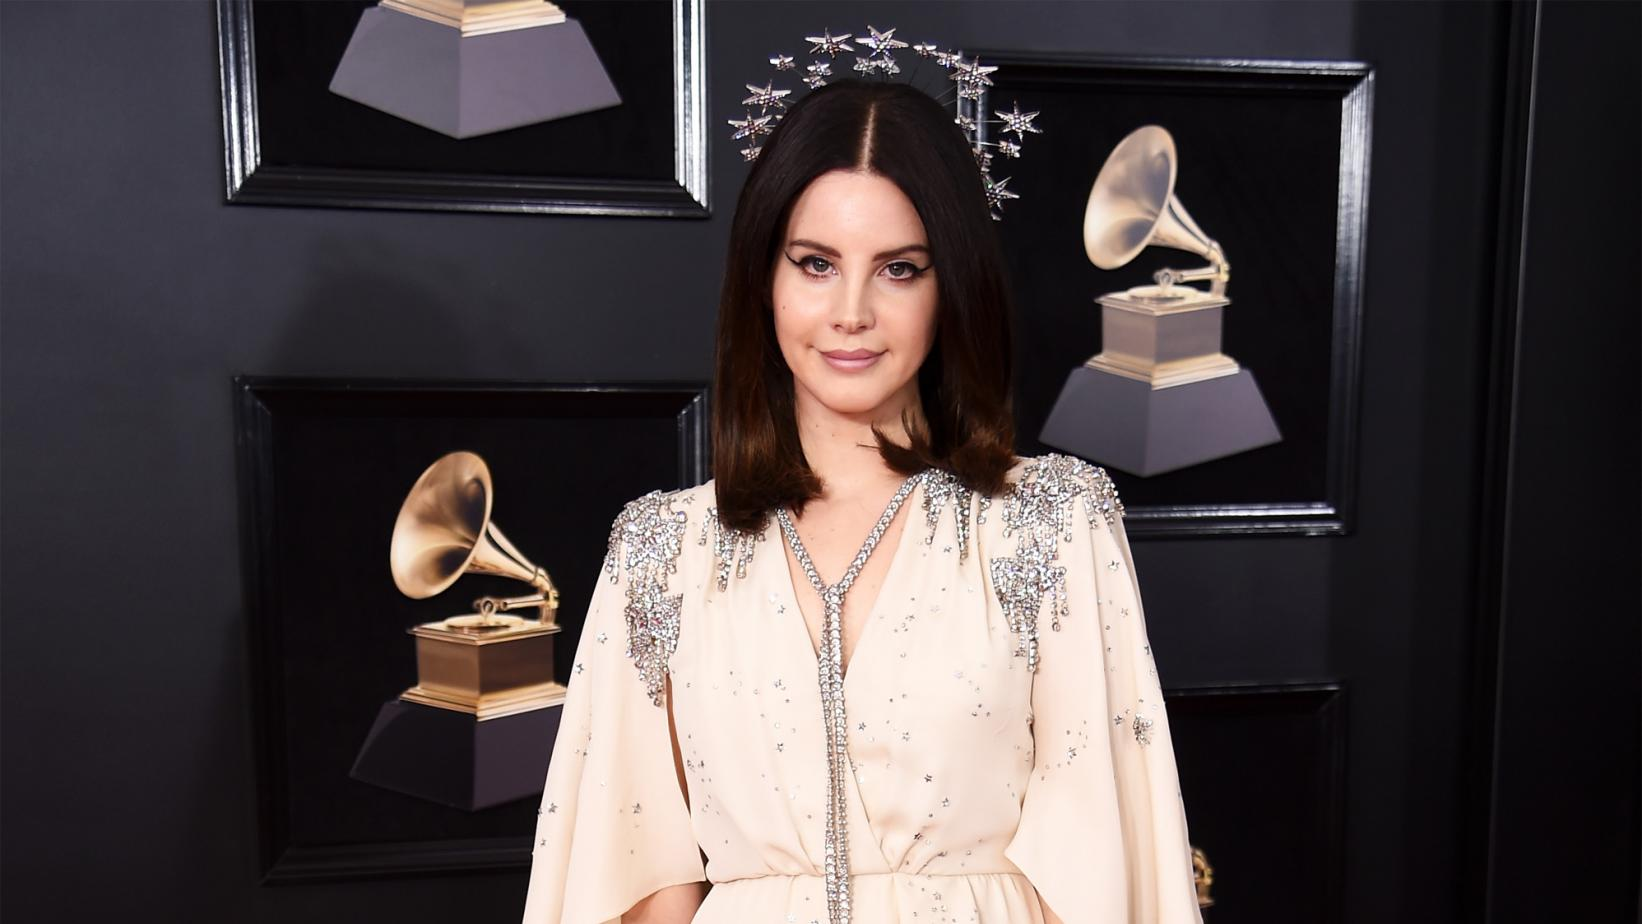 Lana Del Rey at the 60th GRAMMY Awards in 2018